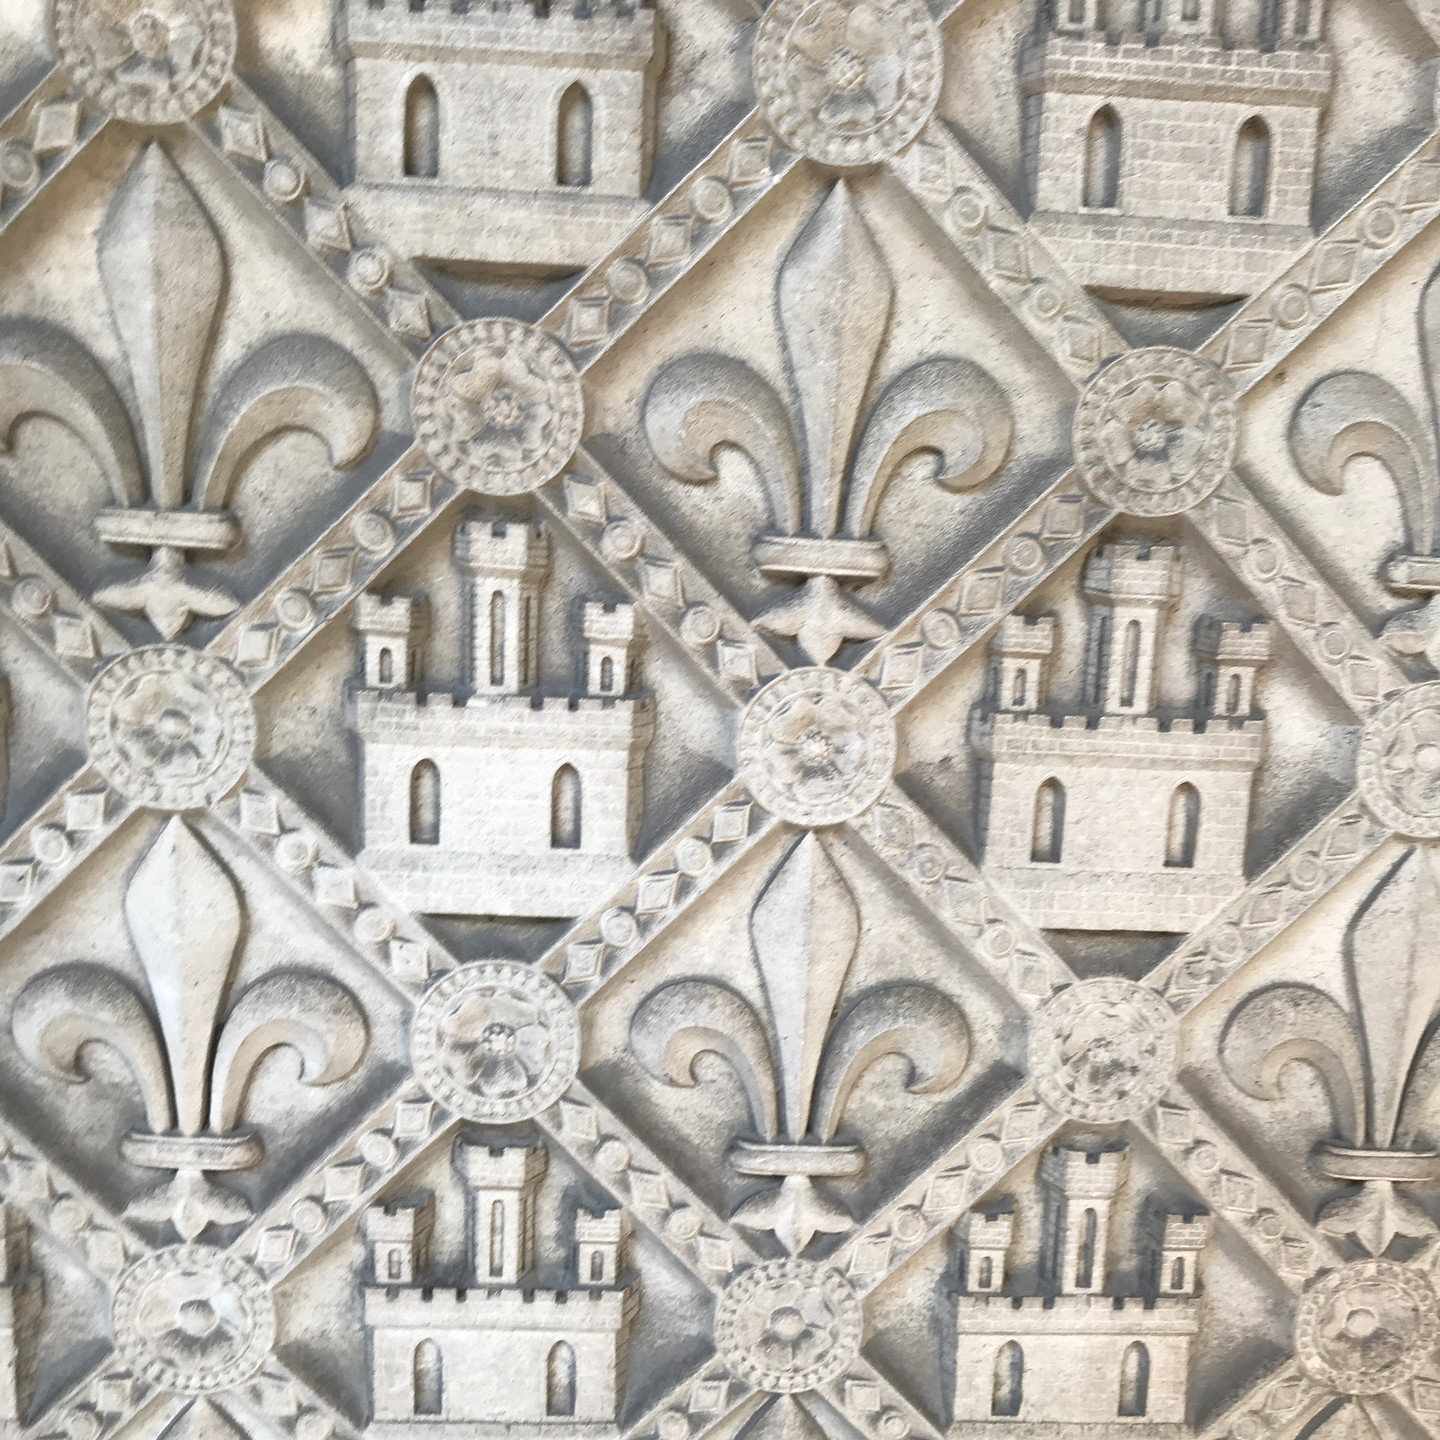 Carved Stonework at Sainte Chapelle in Paris